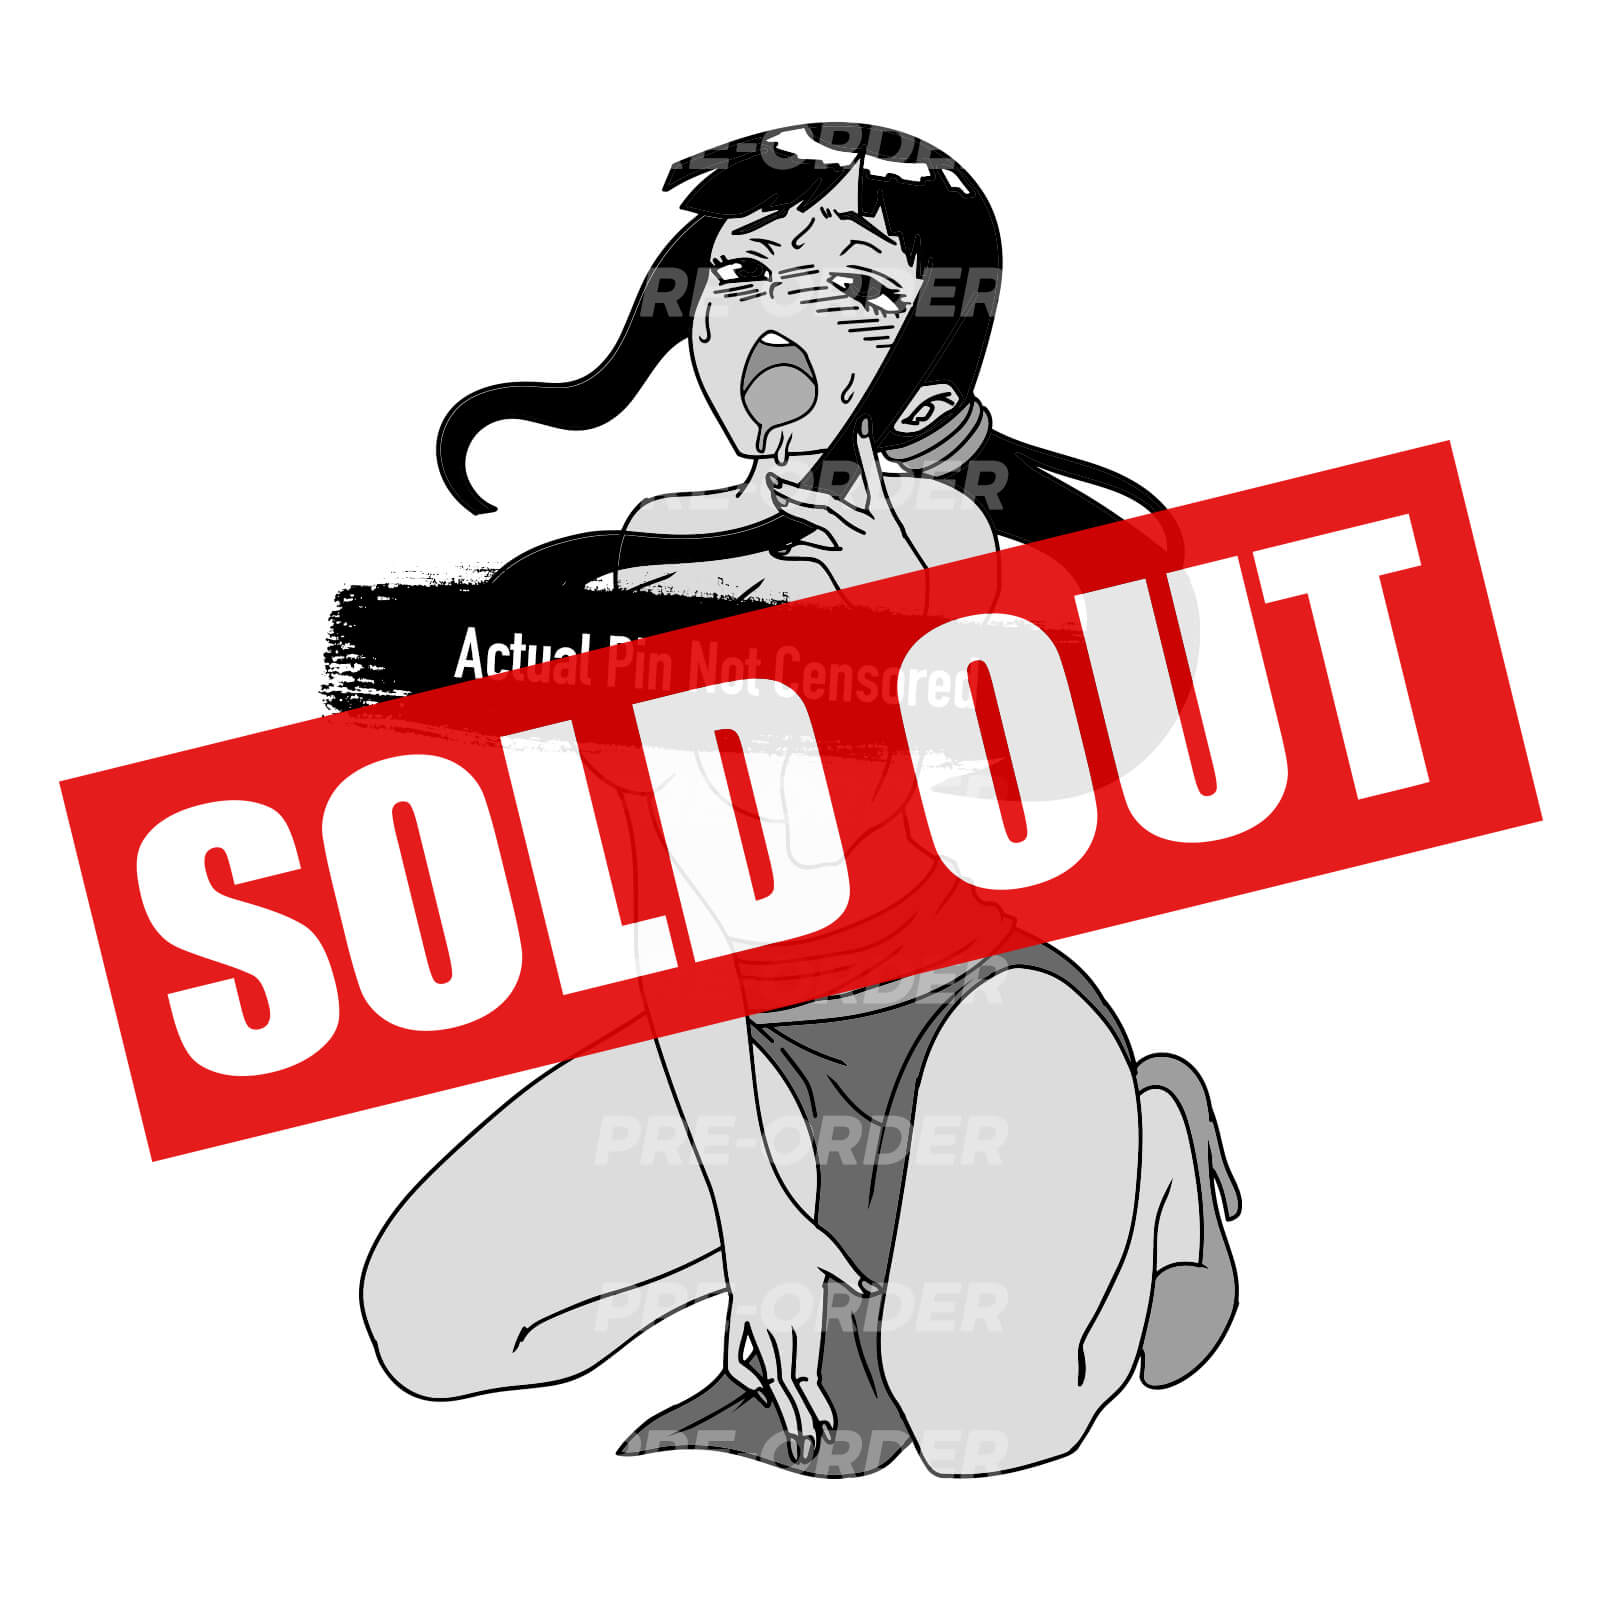 Ahegao Chi-Chi [OG] [NSFW] Enamel Pin (PREORDER)